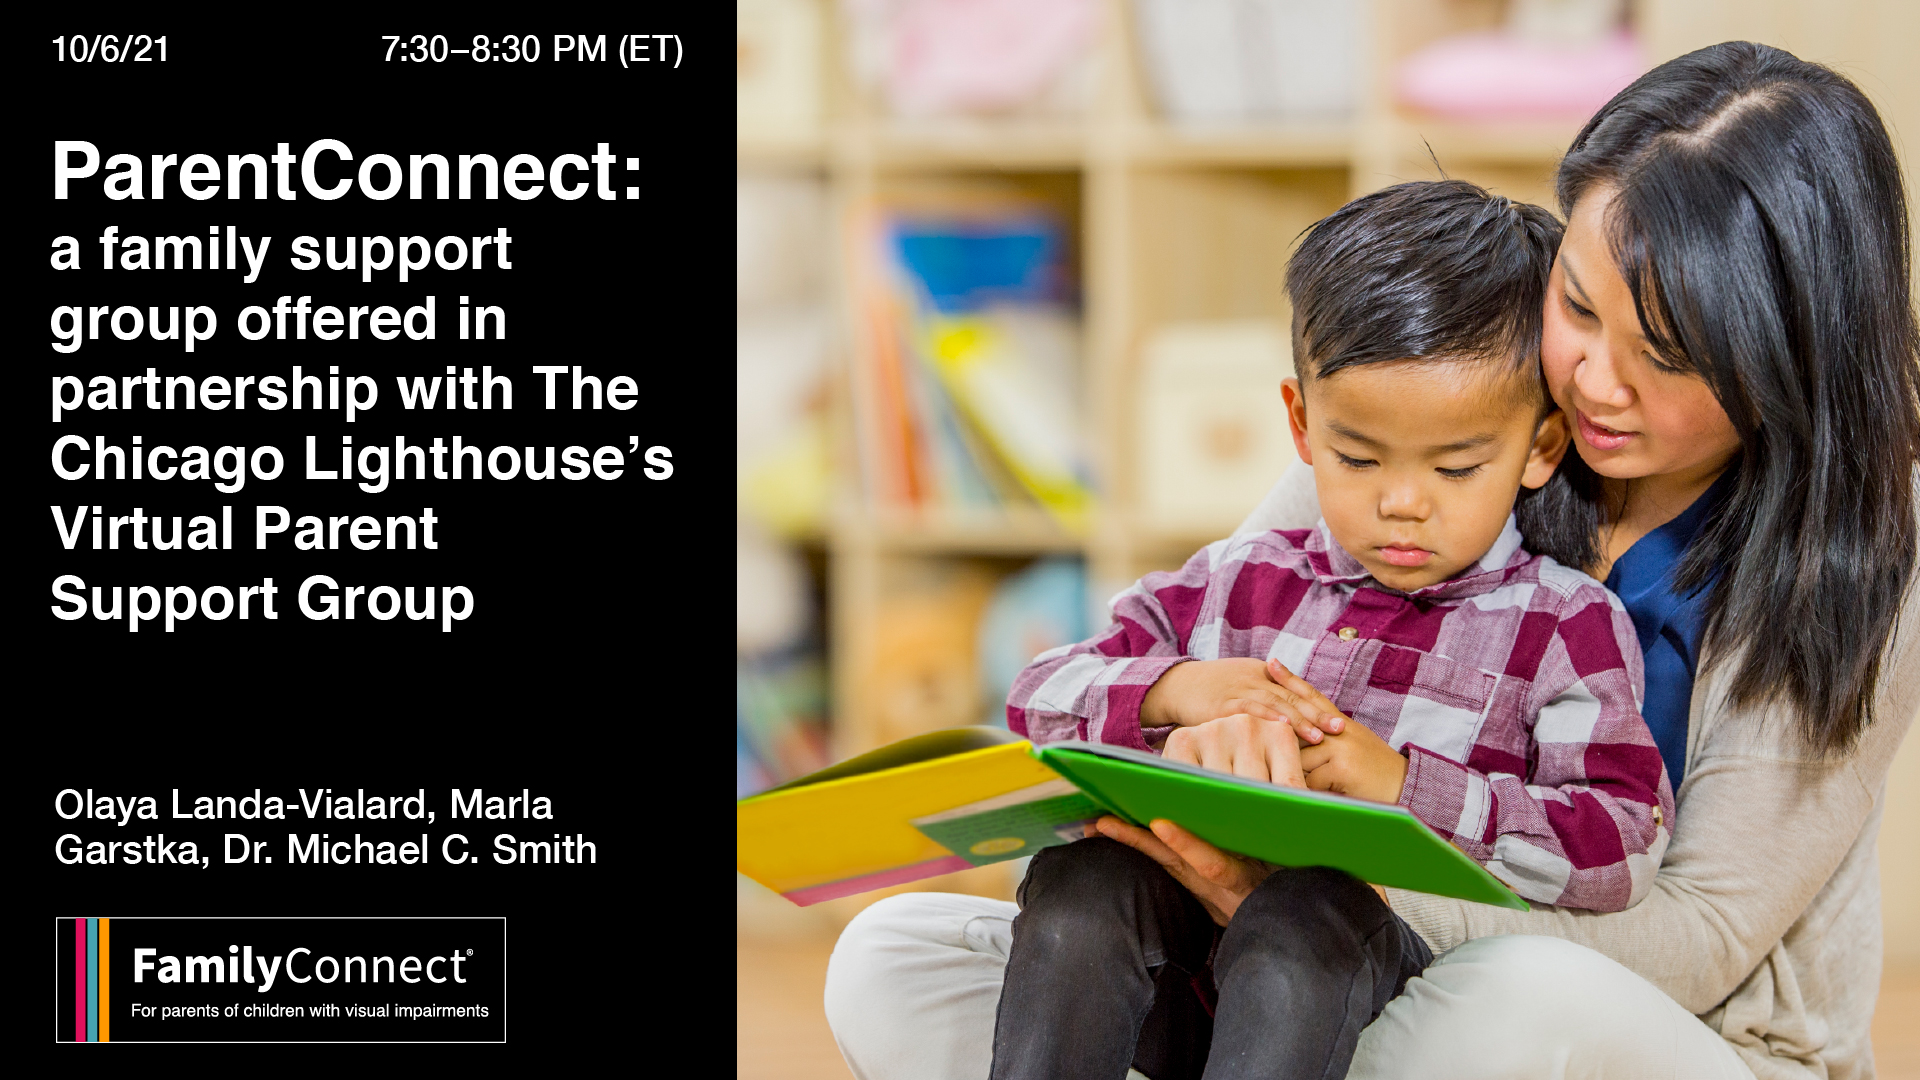 ParentConnect: a family support group offered in partnership with The Chicago Lighthouse's Virtual Parent Support Group. (Ongoing) September 1 @ 7:30 am - 8:30 pm